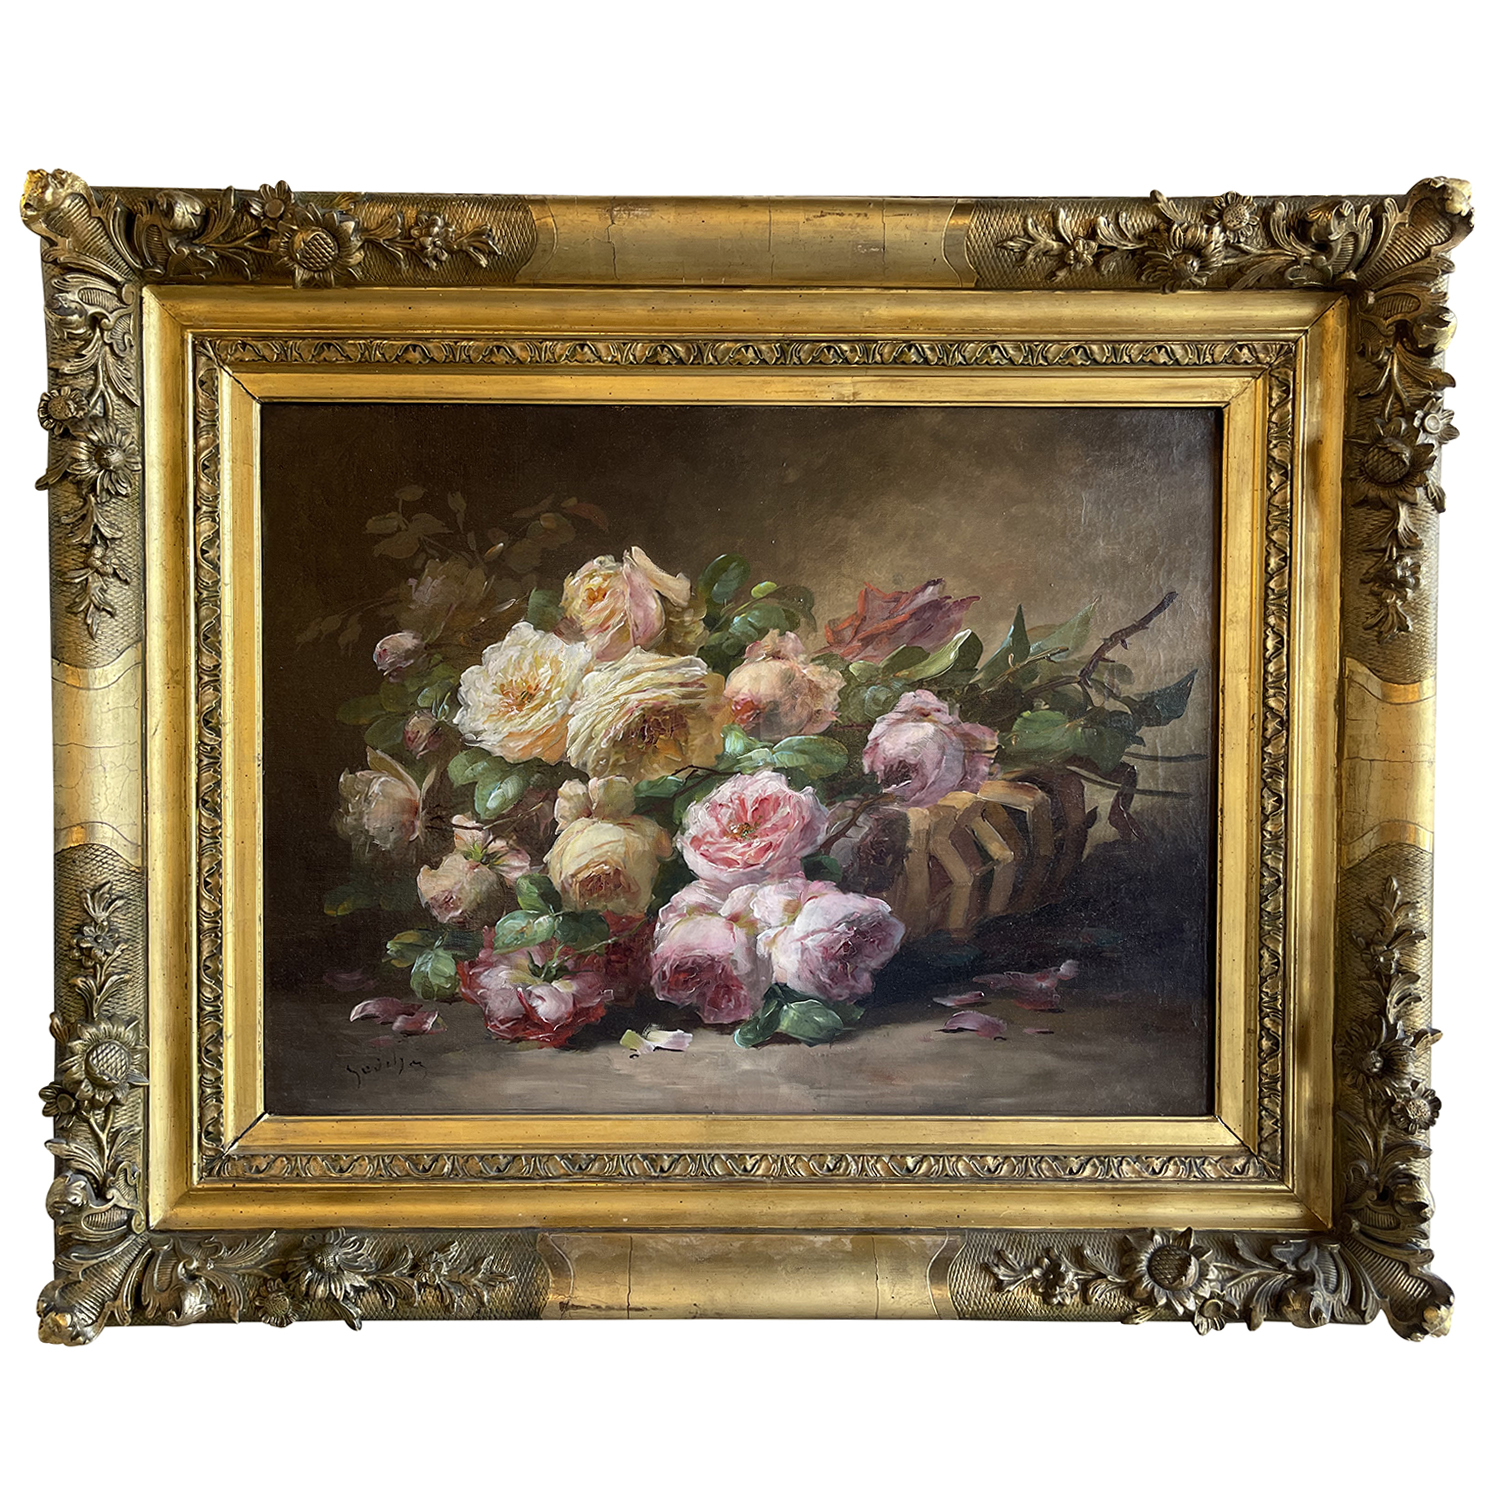 20th Century French Still Life Oil Painting of Colorful Roses by Roger Godchaux